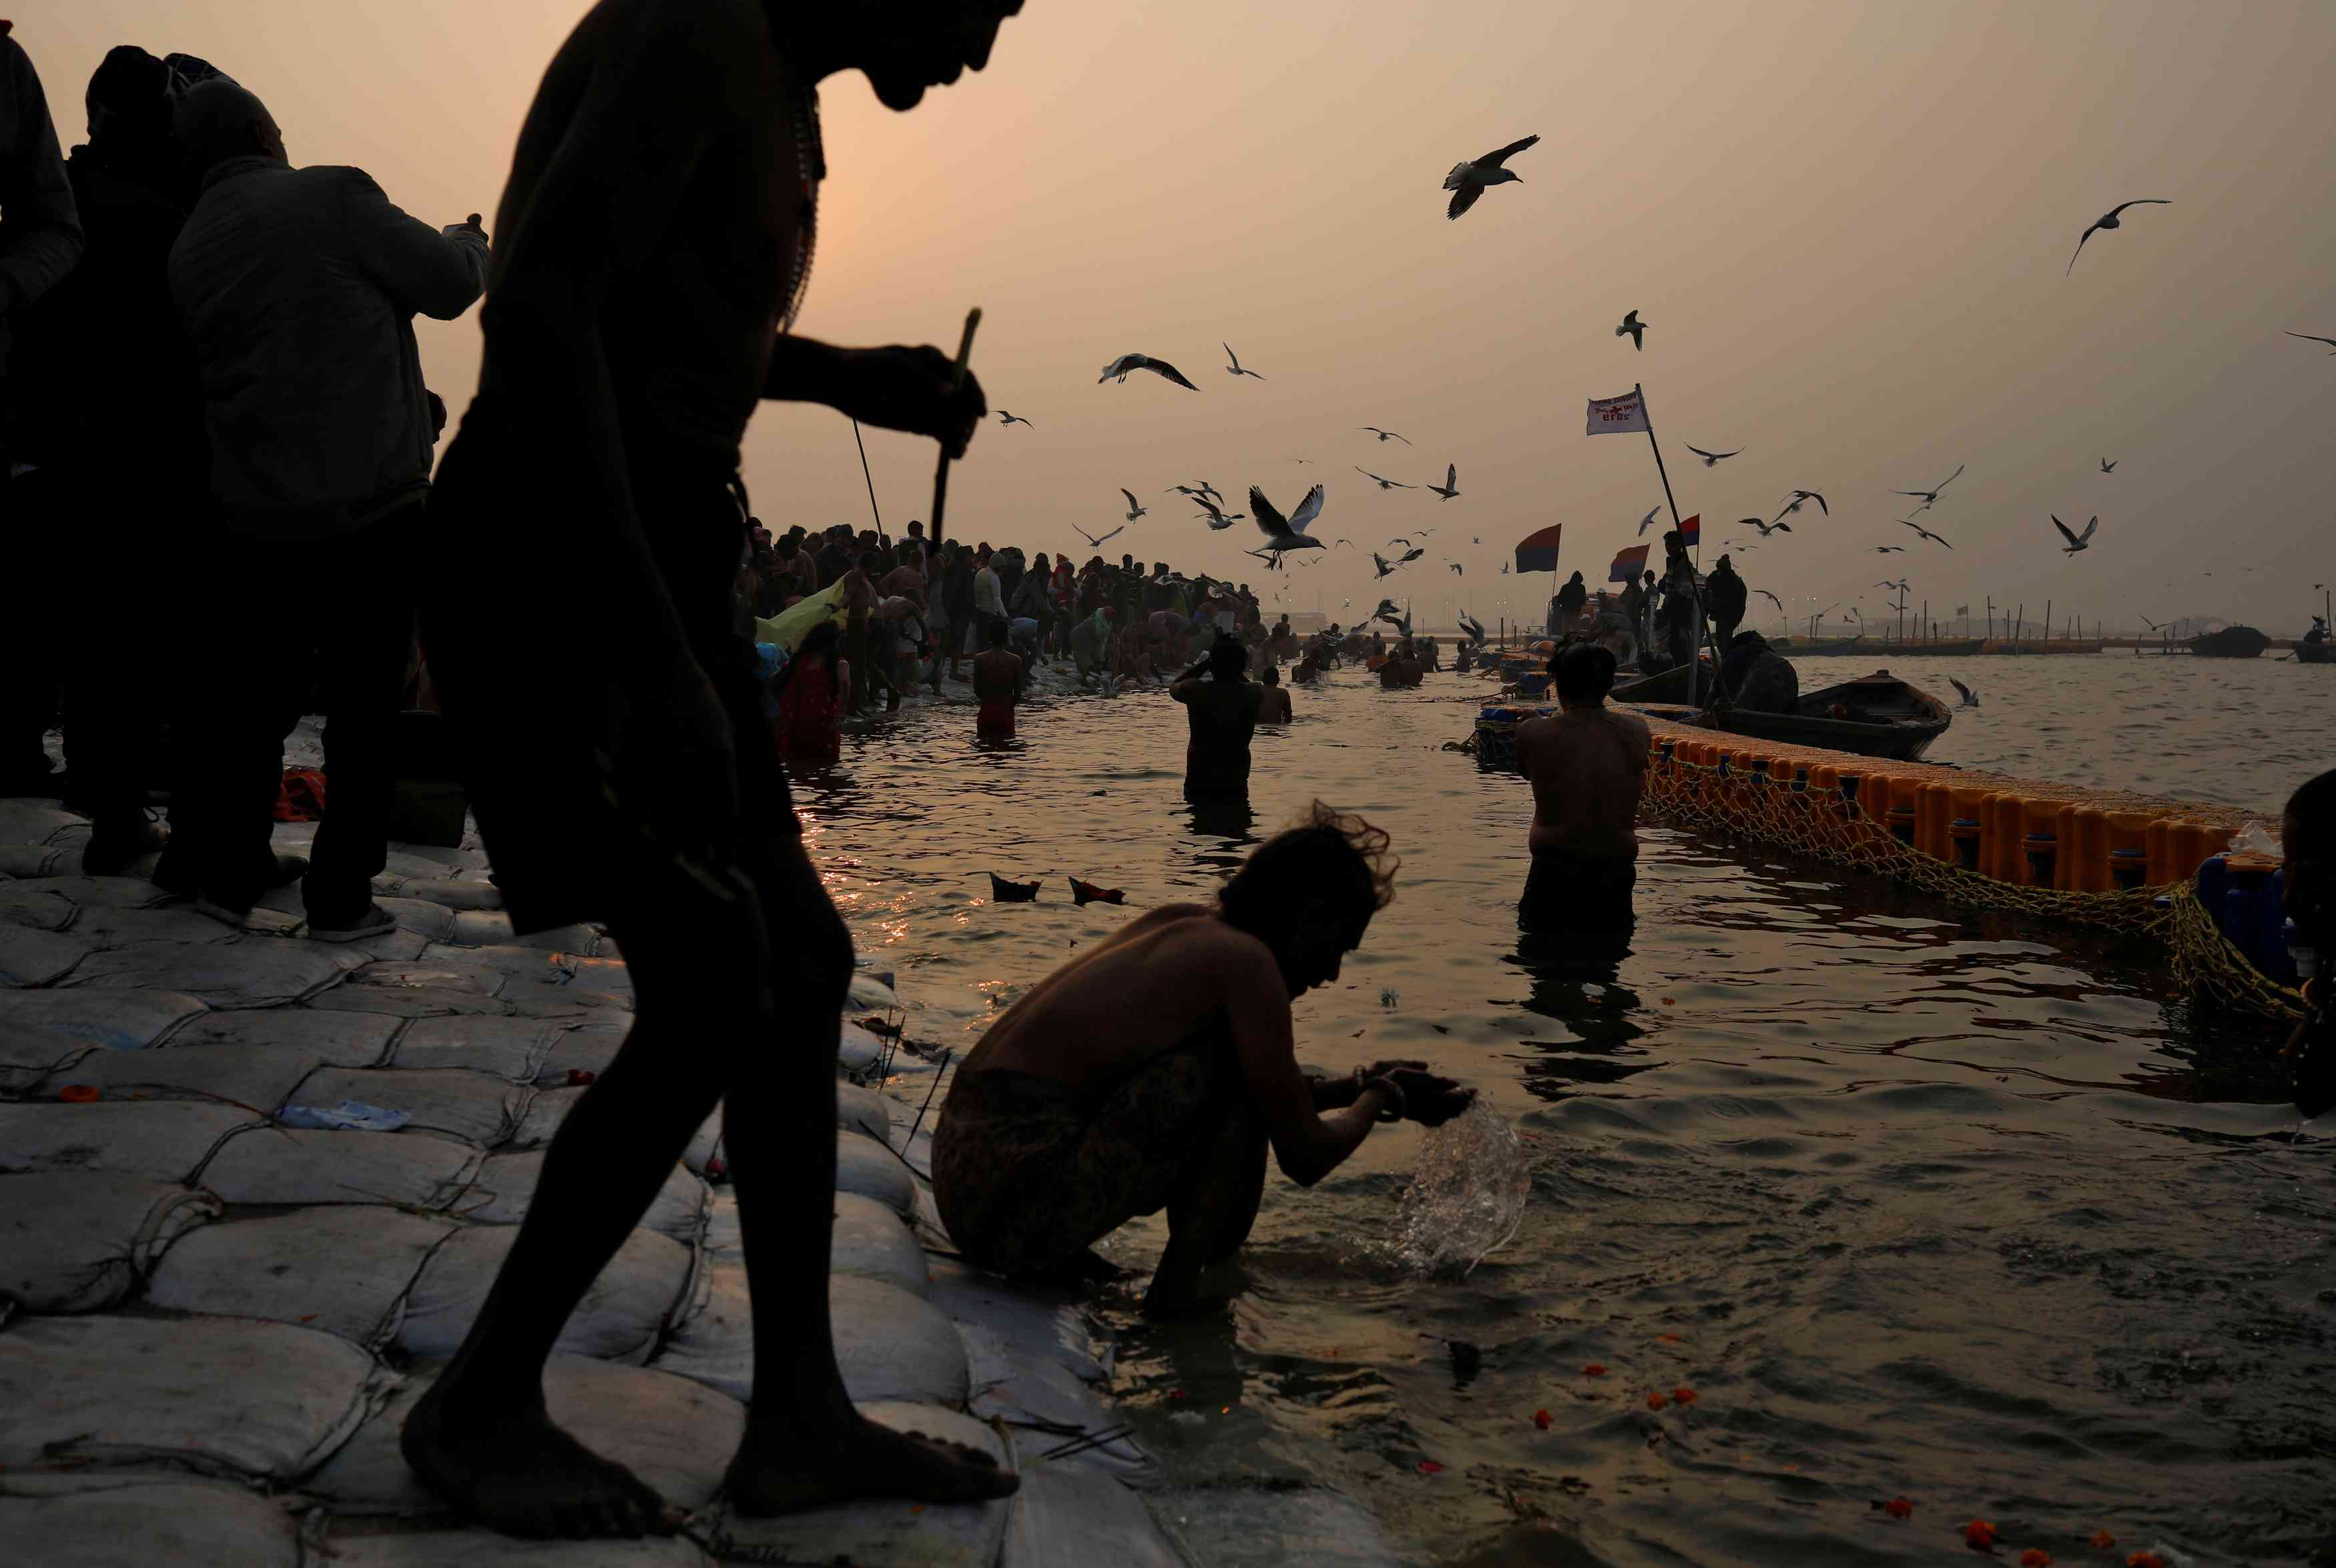 Around 12 crore people are expected to visit the Kumbh mela between now and March 4 when it concludes. Credit: Danish Siddiqui/Reuters